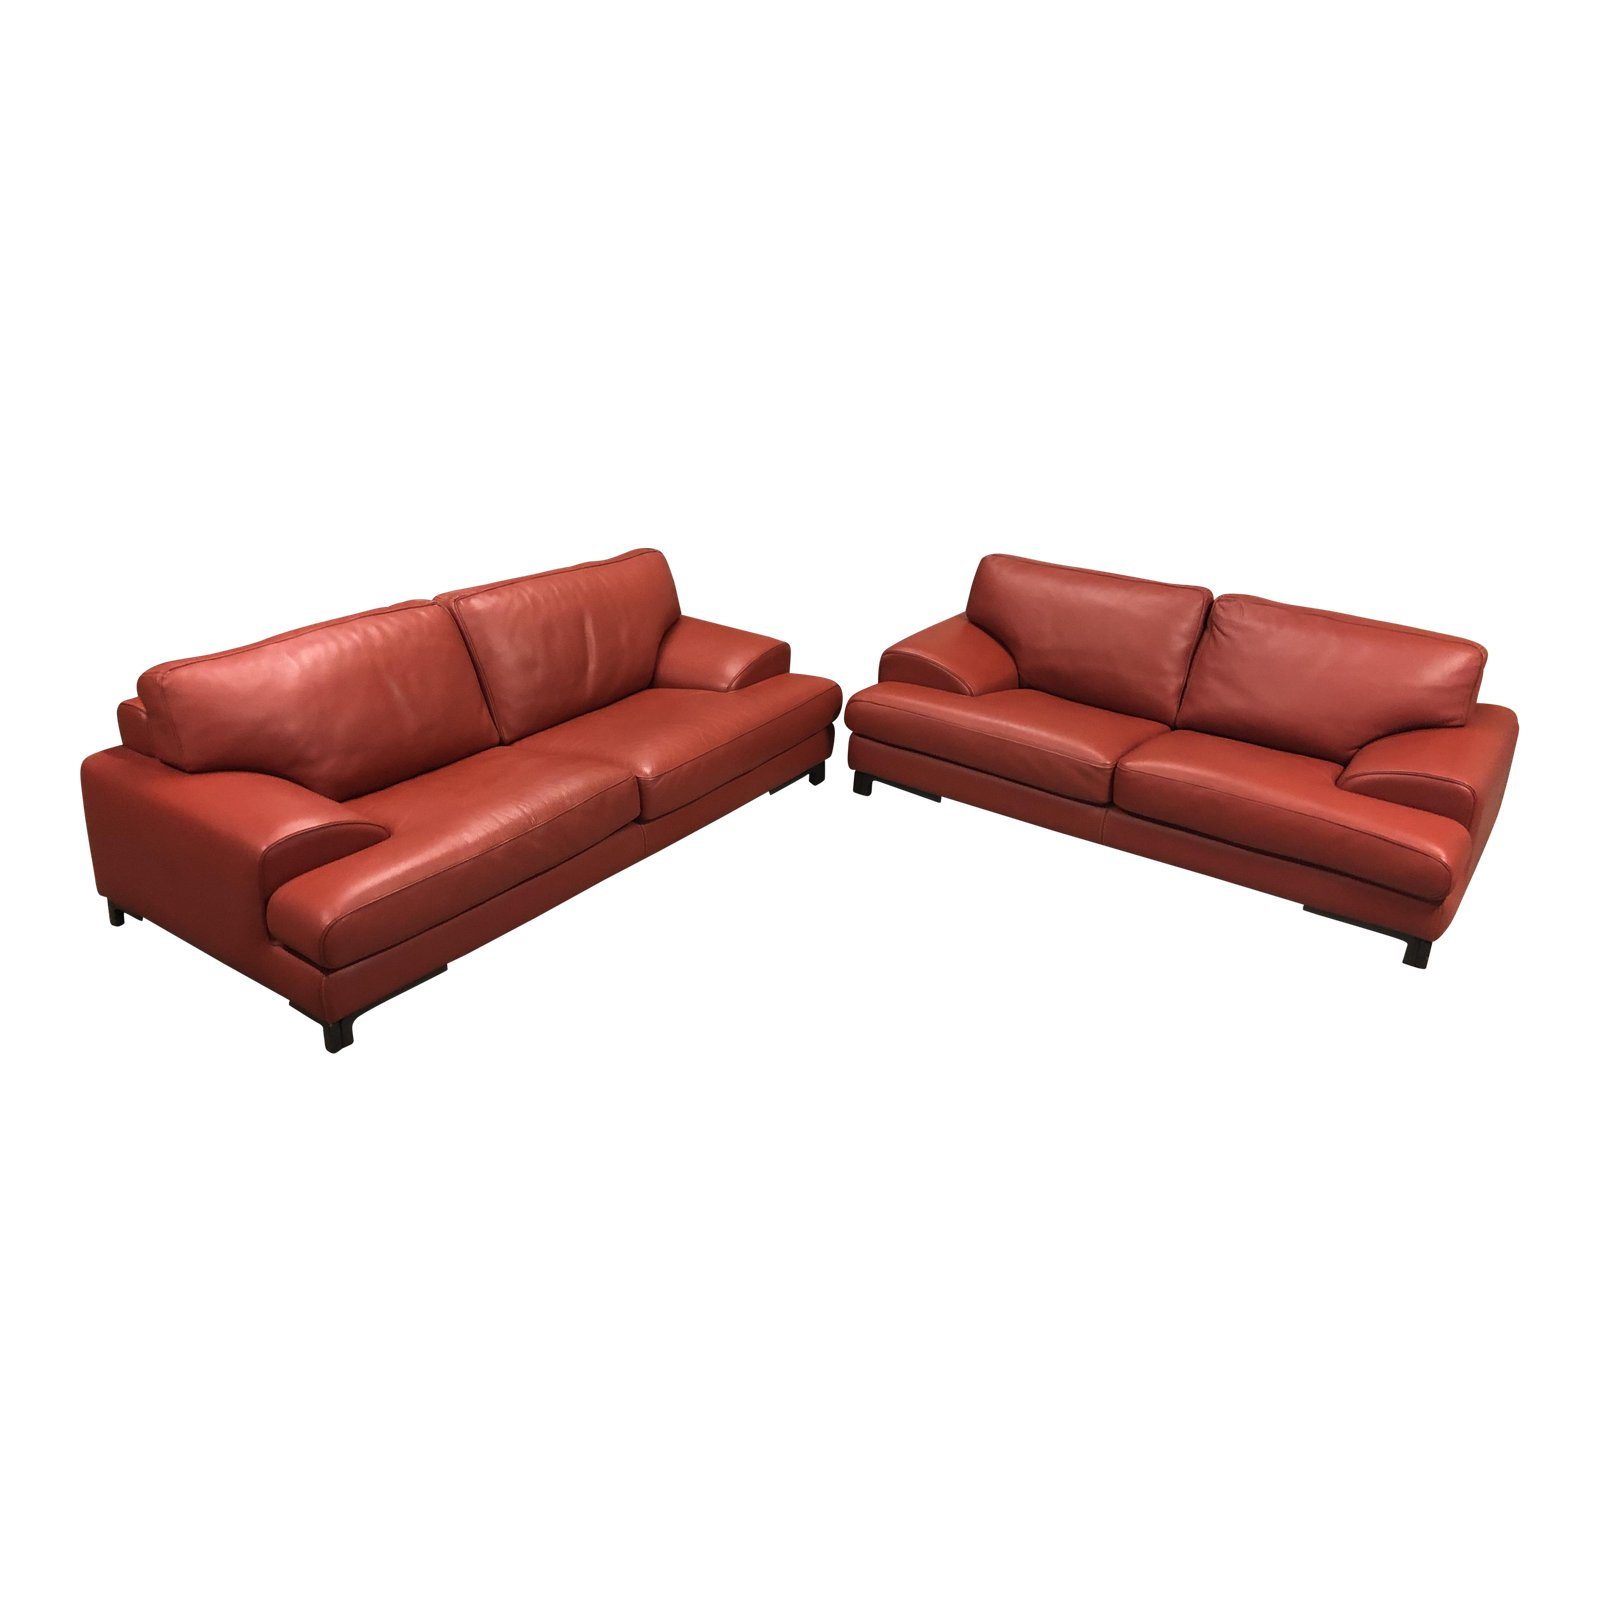 roche-bobois-red-leather-sofa-with-loveseat-2752 - Design Plus Gallery